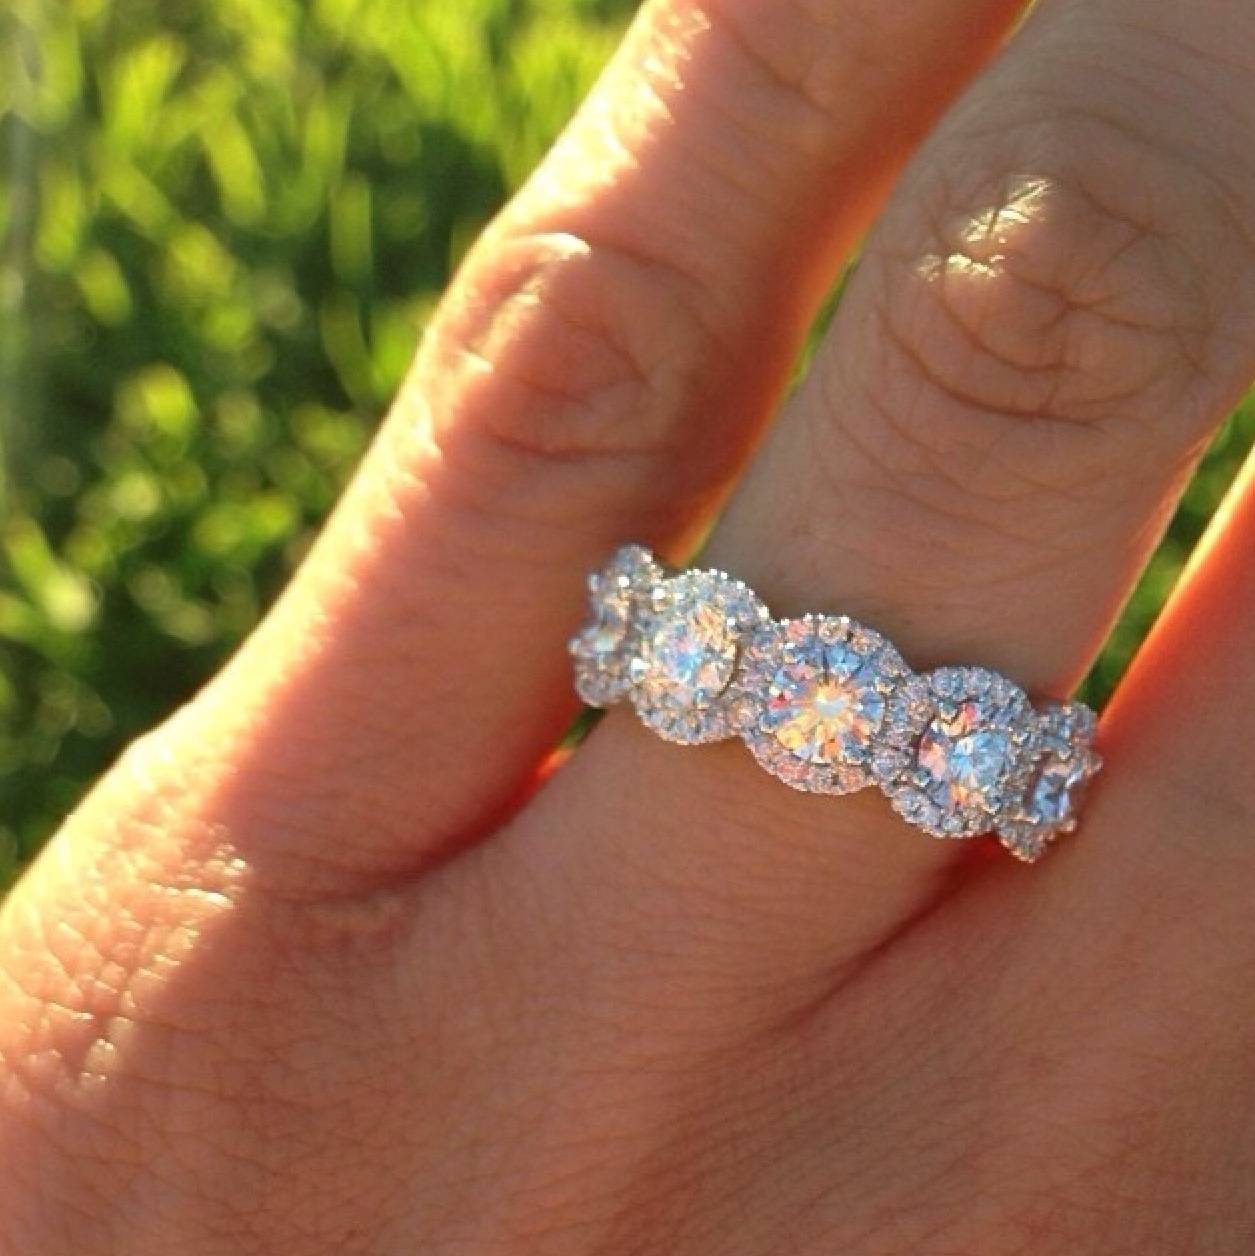 Uncategorized : Yellow Gold Pave Ring Pave Diamond Wedding Ring Intended For Most Current Halo Anniversary Rings (Gallery 5 of 25)